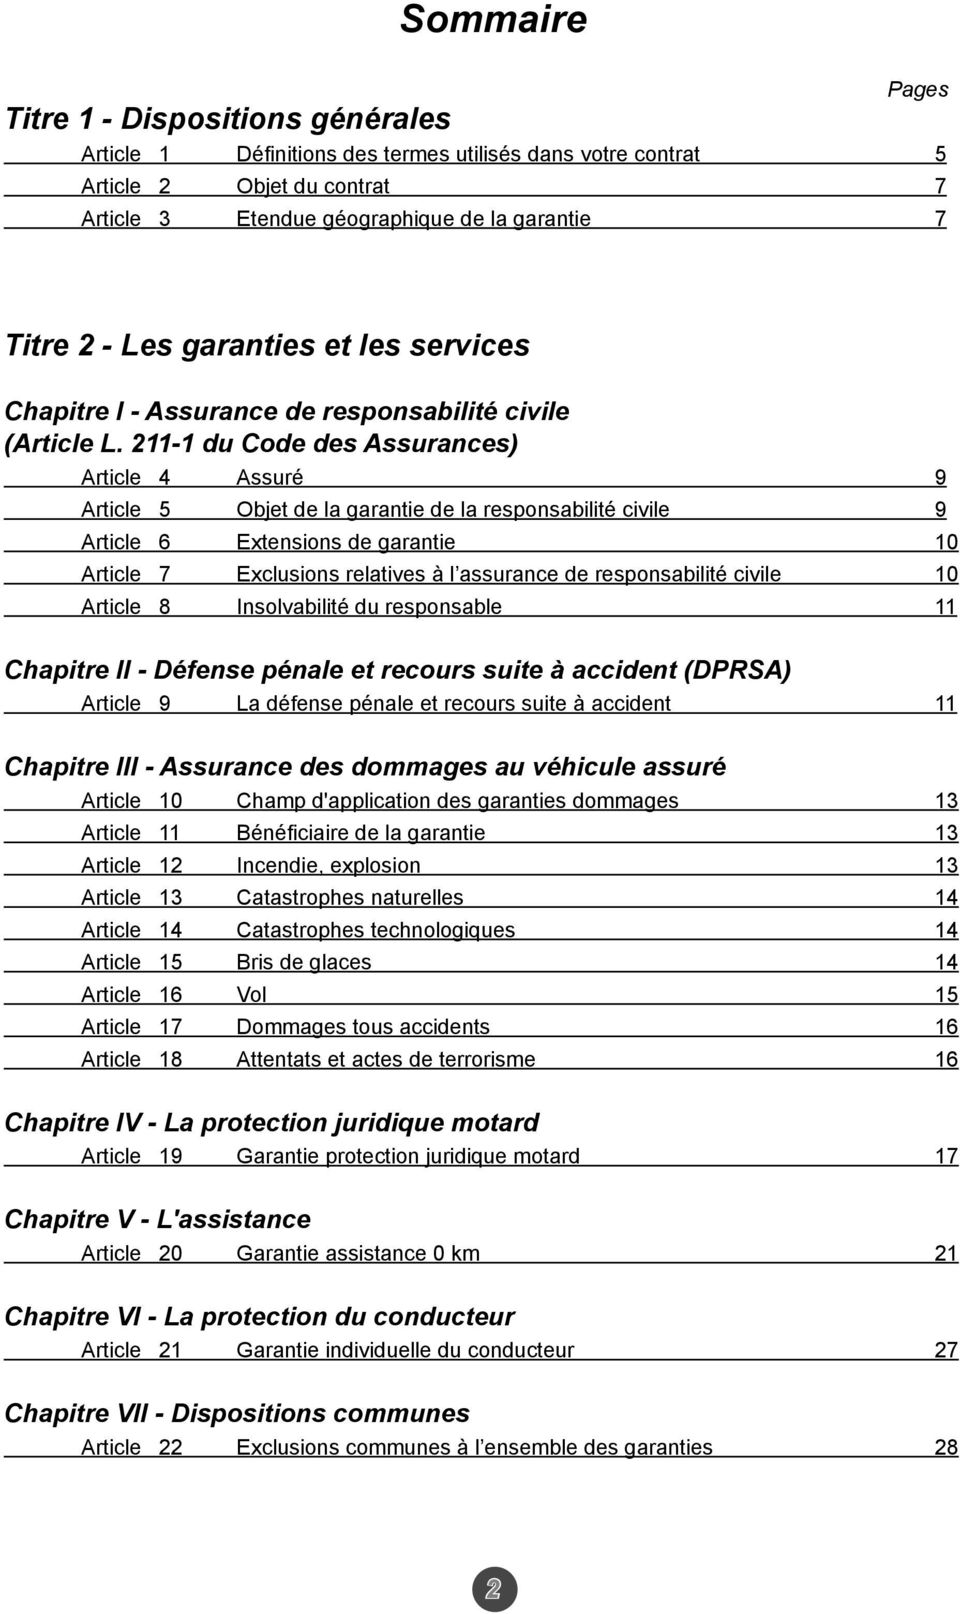 211-1 du Code des Assurances) Article 4 Assuré 9 Article 5 Objet de la garantie de la responsabilité civile 9 Article 6 Extensions de garantie 10 Article 7 Exclusions relatives à l assurance de